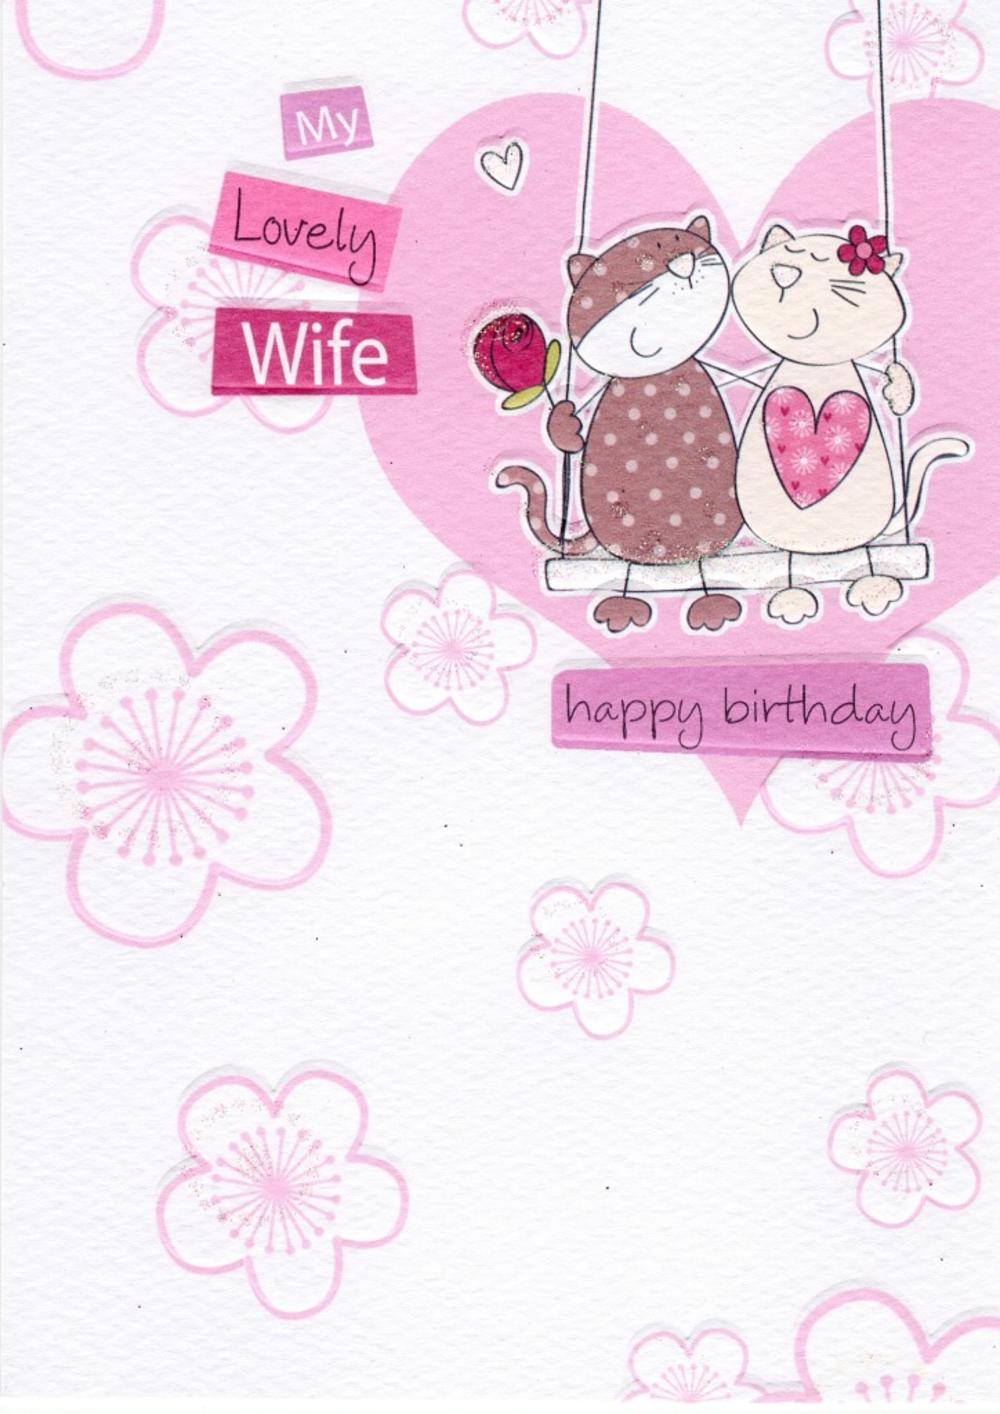 My Lovely Wife Birthday Greeting Card Cards Love Kates